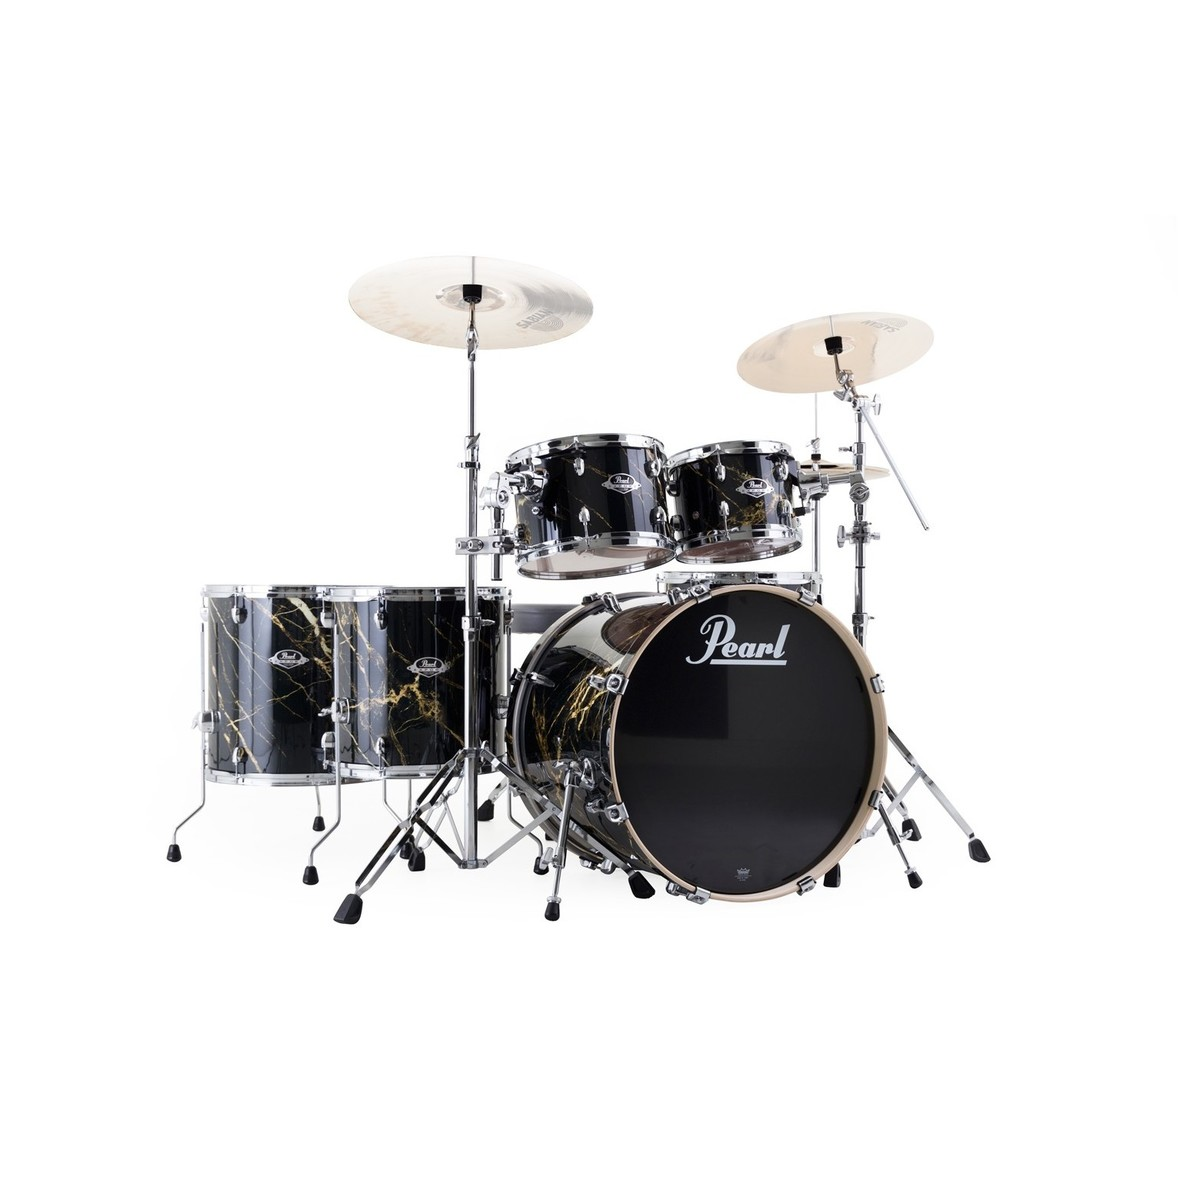 acoustic drum kits pearl exa limited edition black and gold marble 22 39 39 drum kit. Black Bedroom Furniture Sets. Home Design Ideas